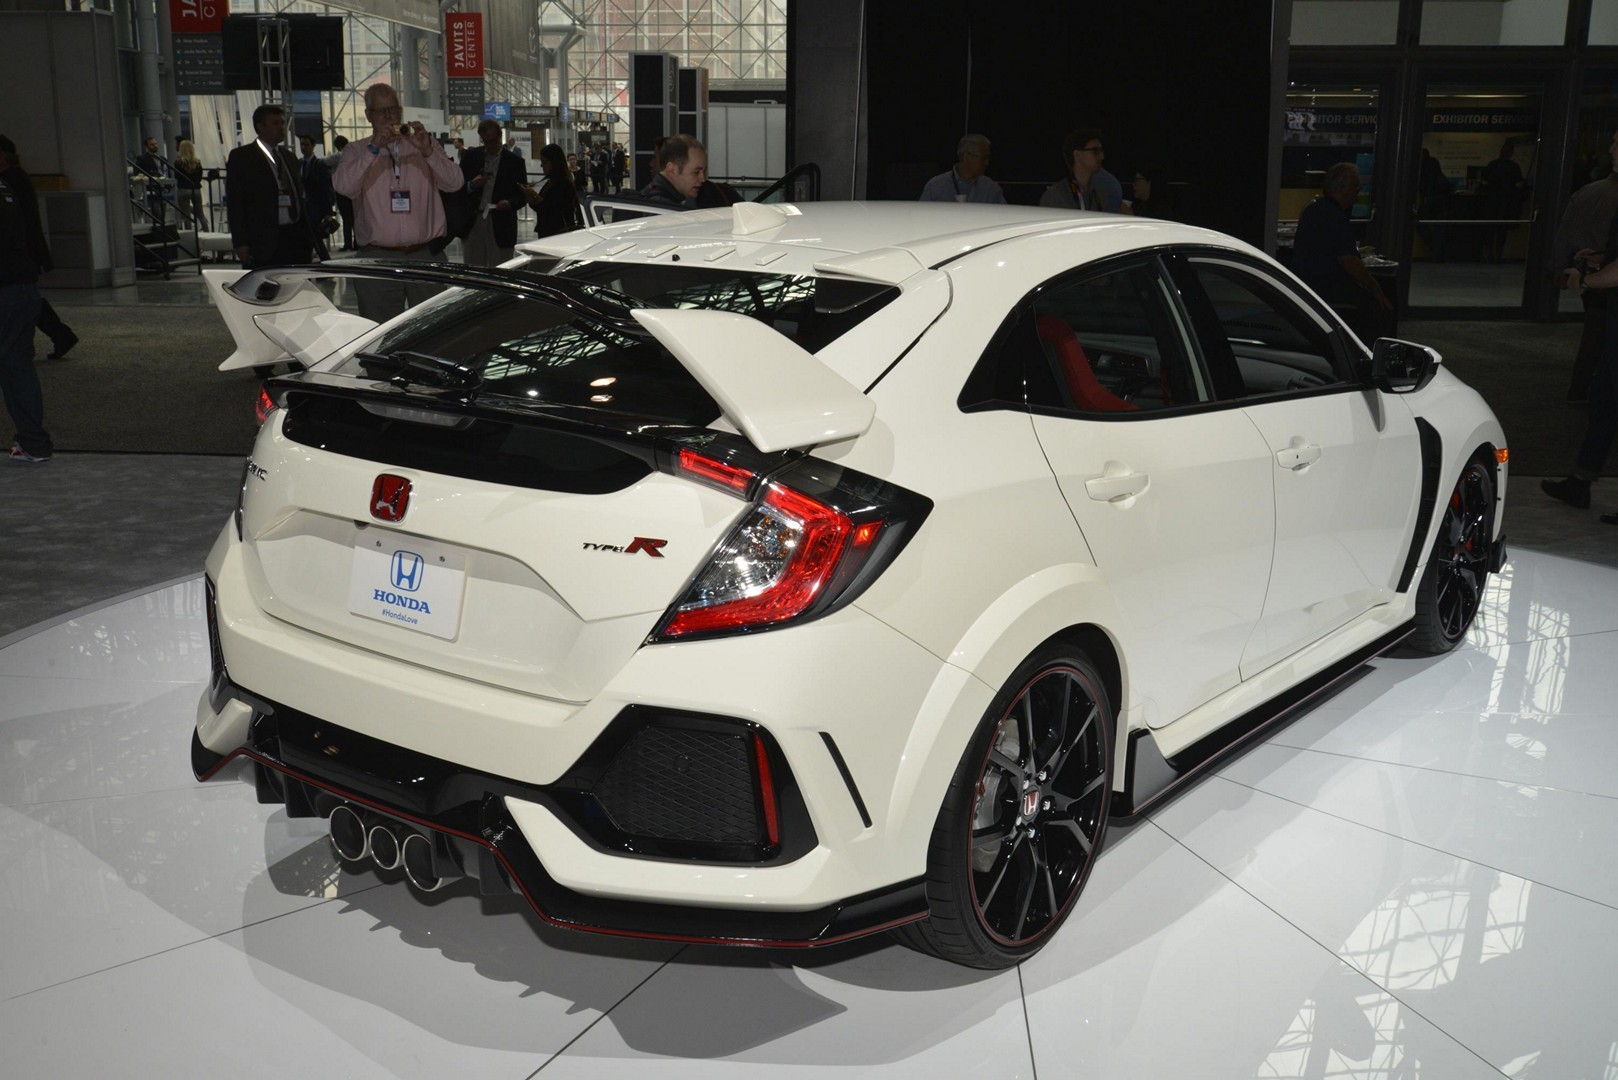 Honda To Introduce Base Trim Level For Civic Type R In 2018 - autoevolution